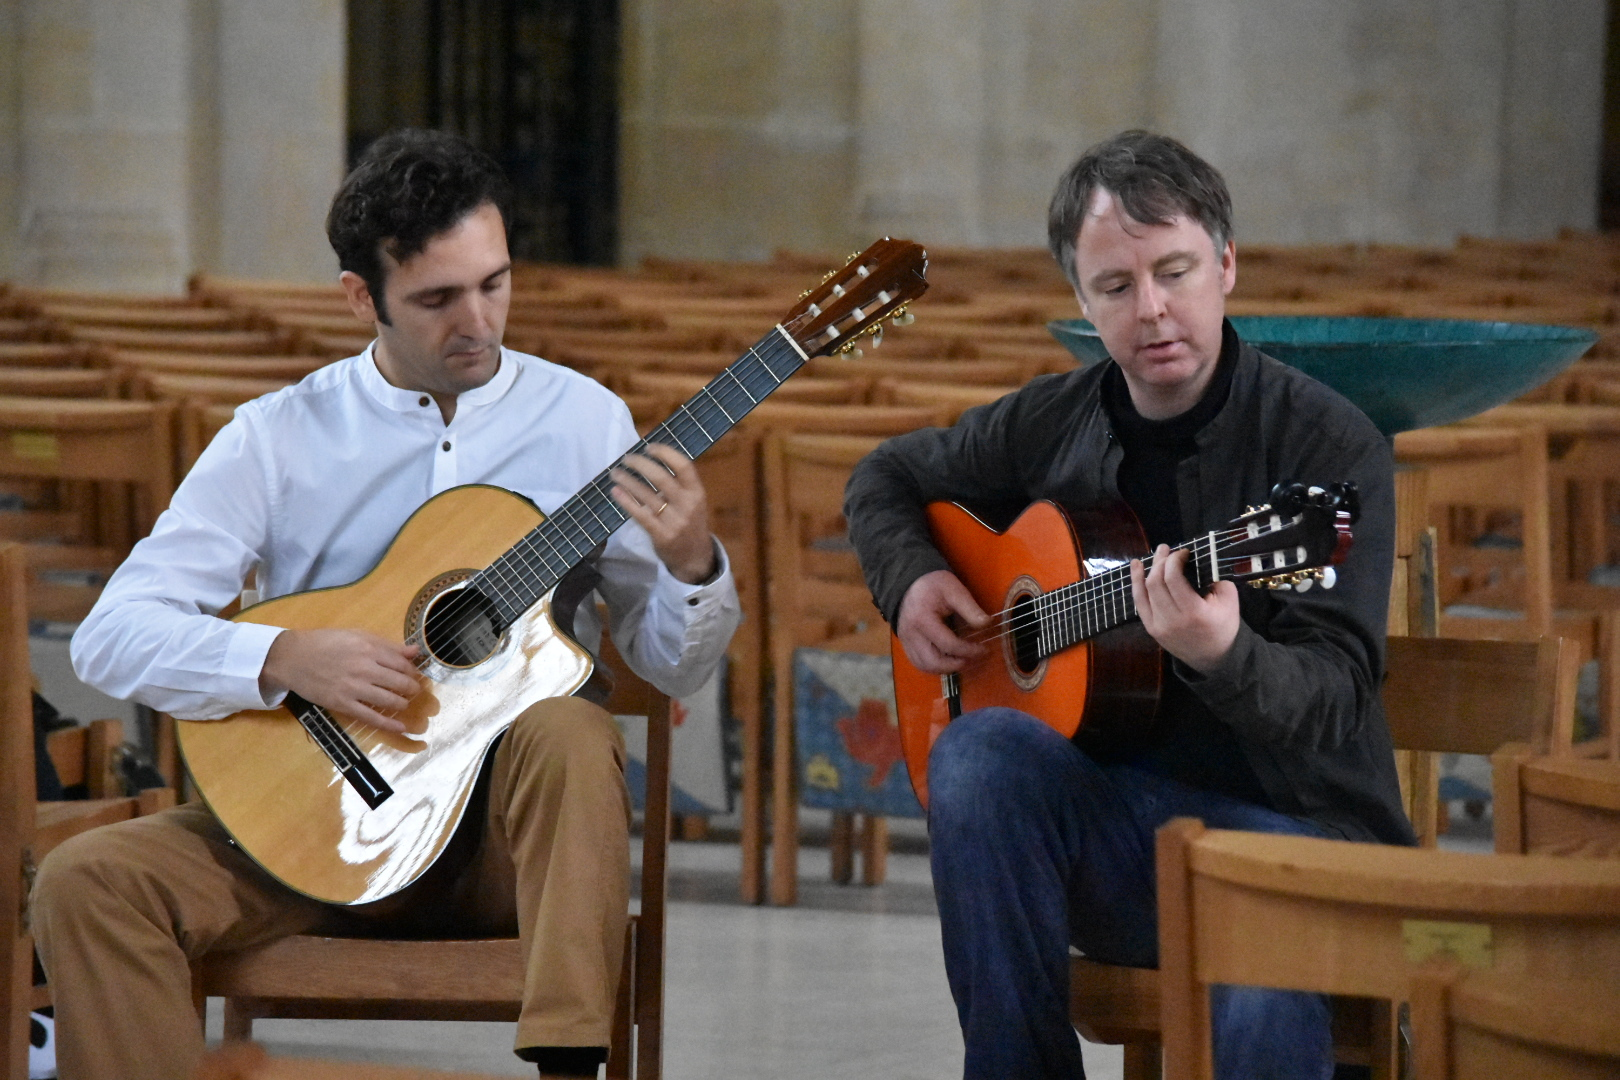 Take a musical journey with esteemed musicians Georgio Serci, left, and Jonny Phillips, right